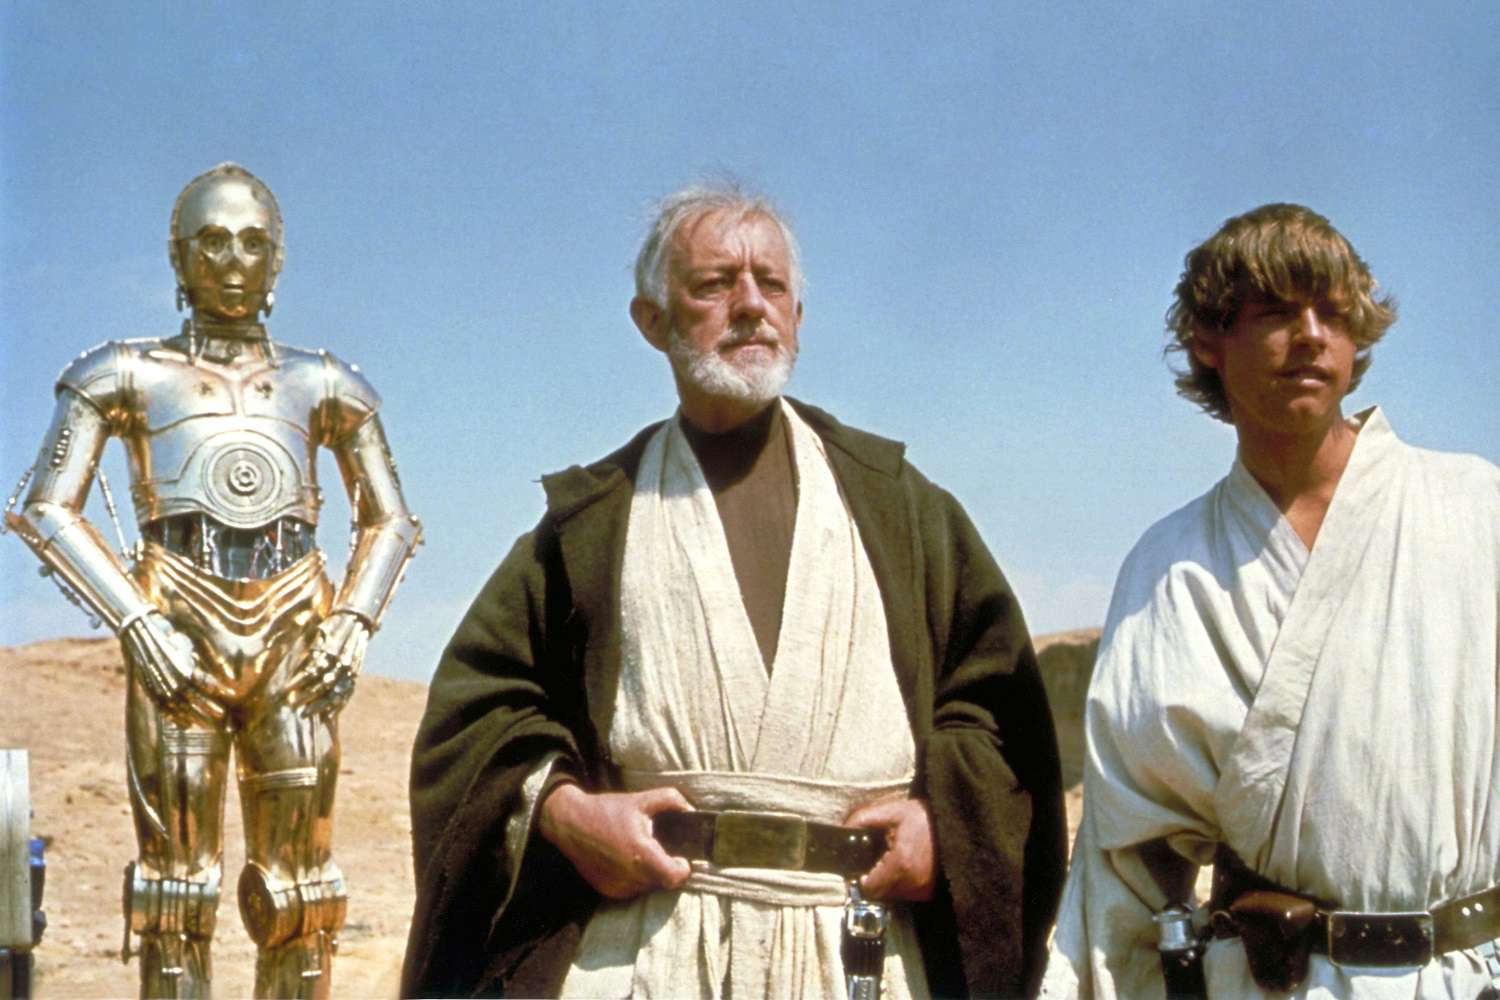 Actors Anthony Daniels, Alec Guinness, and Mark Hamill on the set of the 1977 film 'Star Wars'